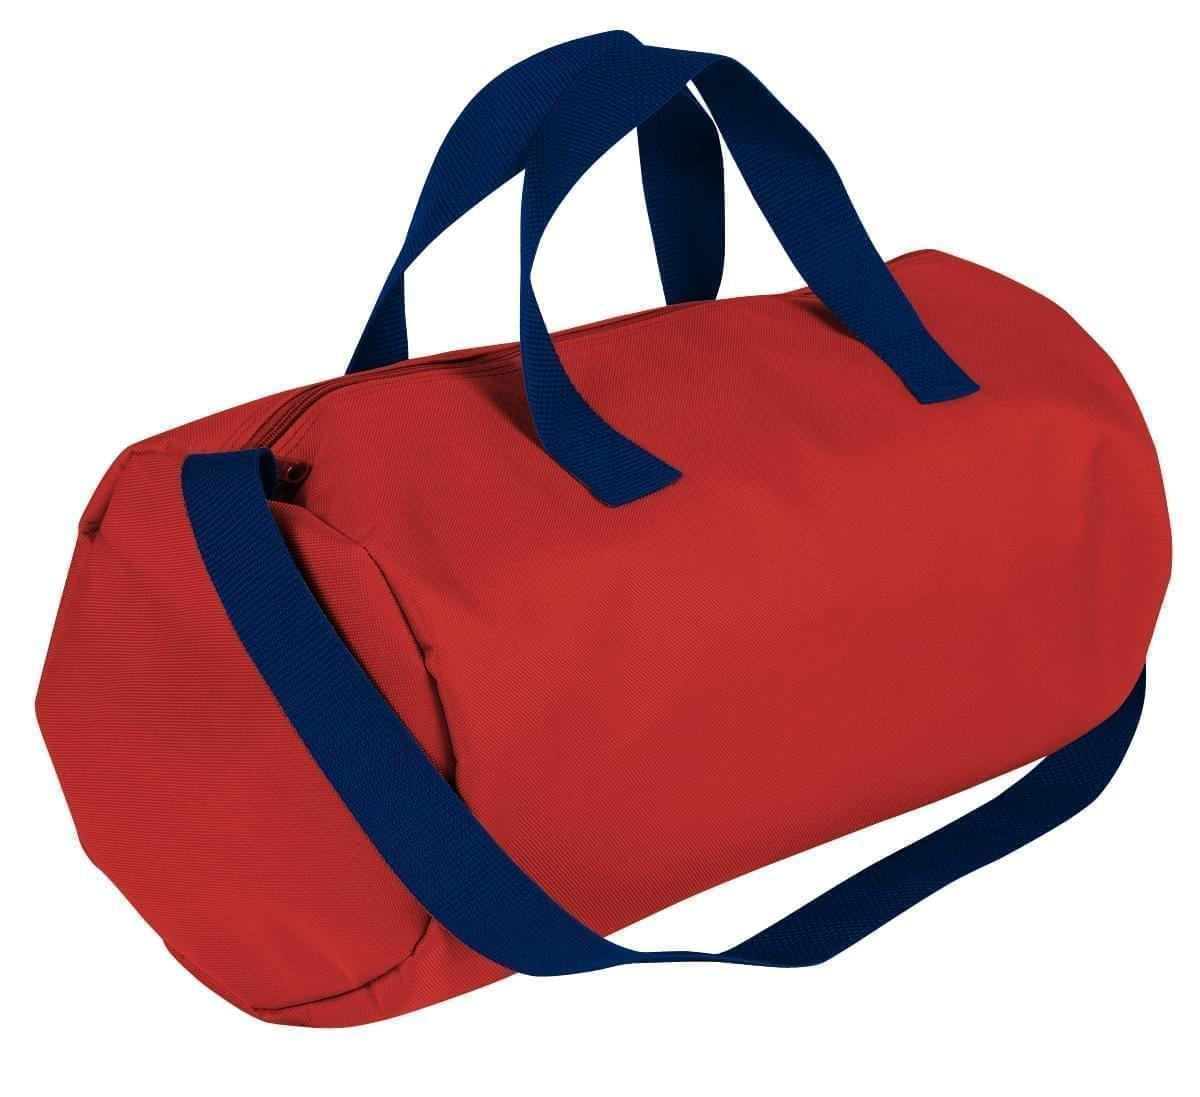 USA Made Nylon Poly Gym Roll Bags, ROCX31-600